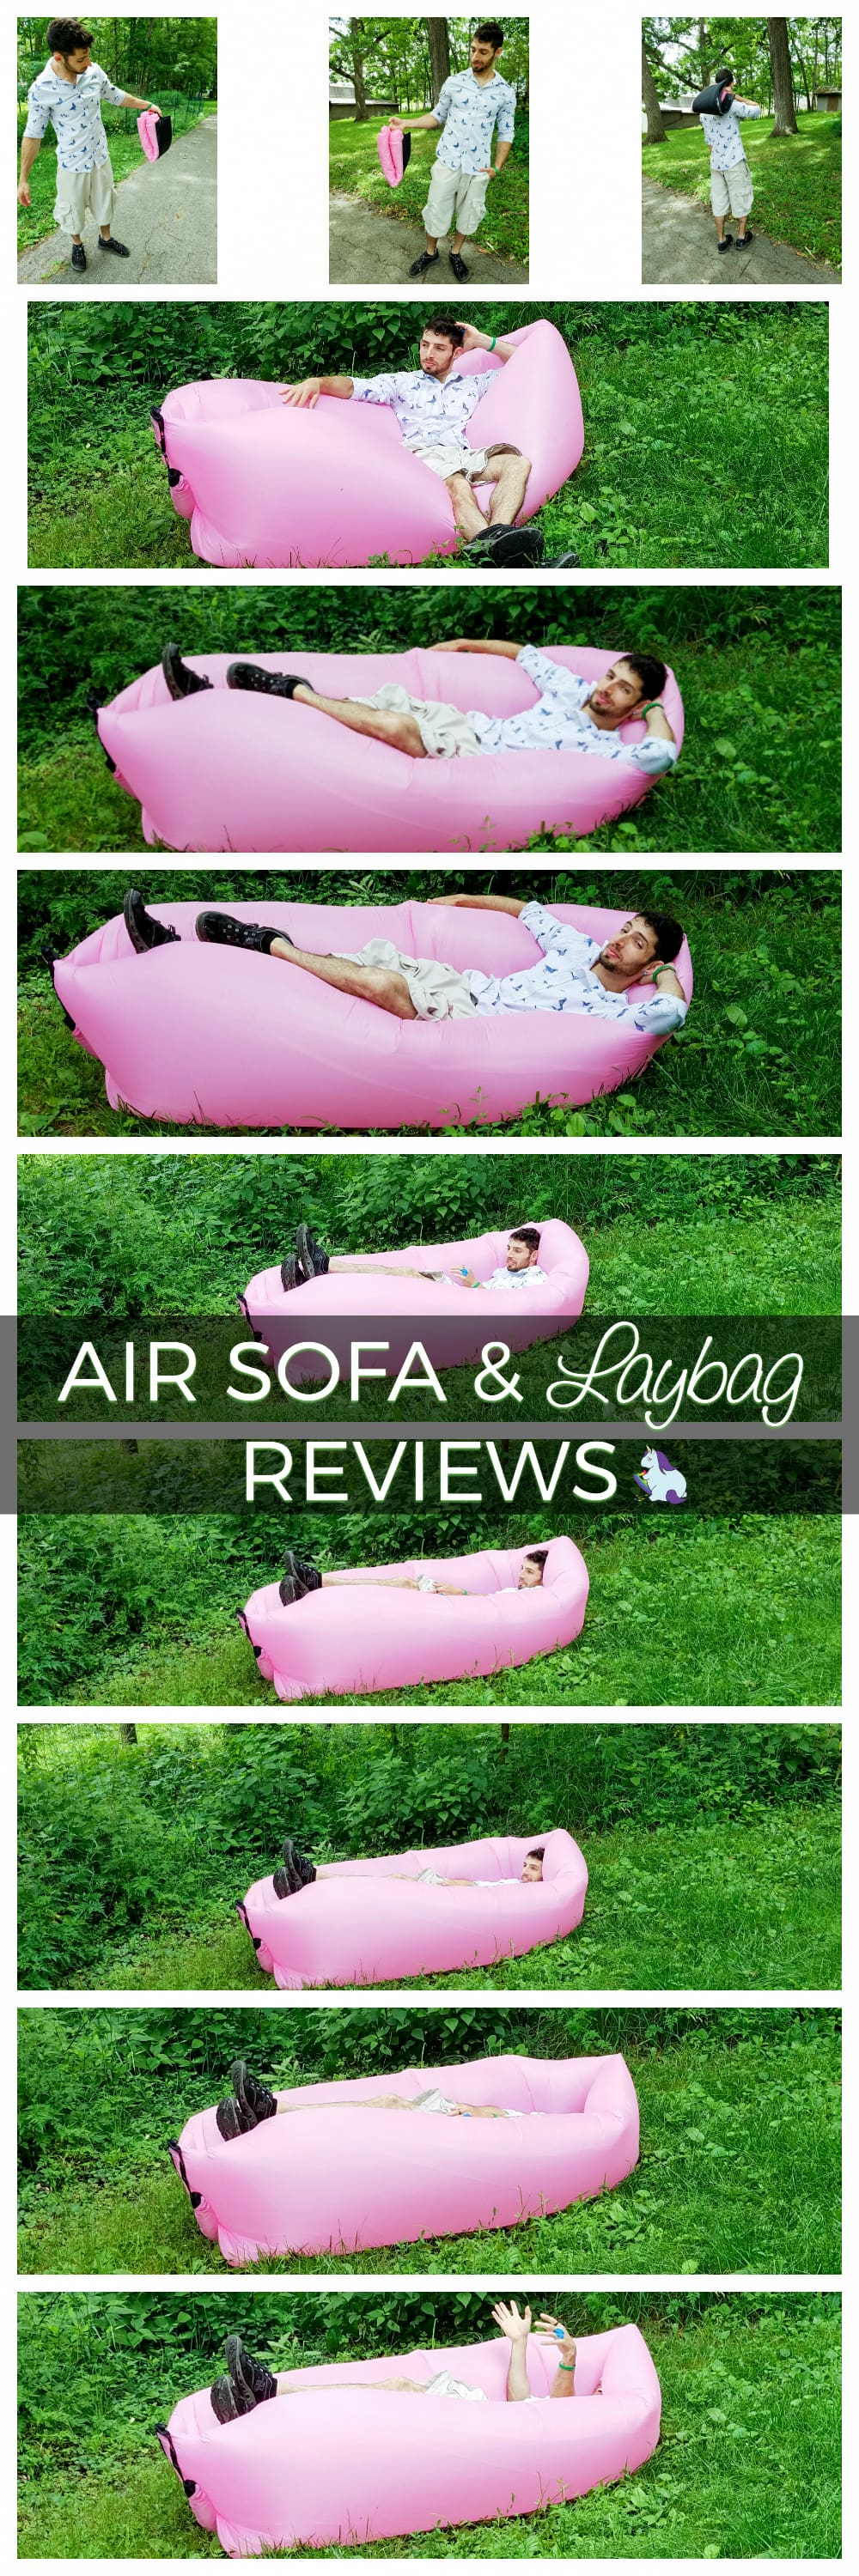 Air sofa, inflatable lounger, Laybag reviews